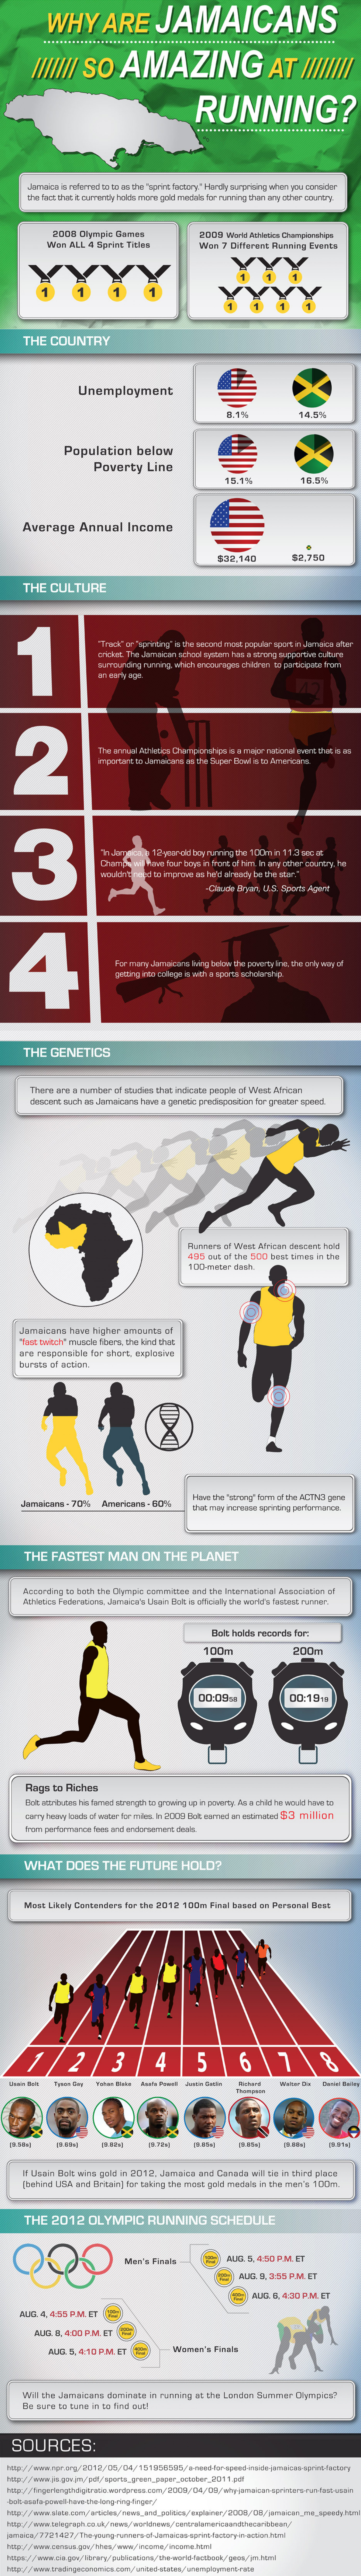 Why are Jamaicans so amazing at running? Infographic